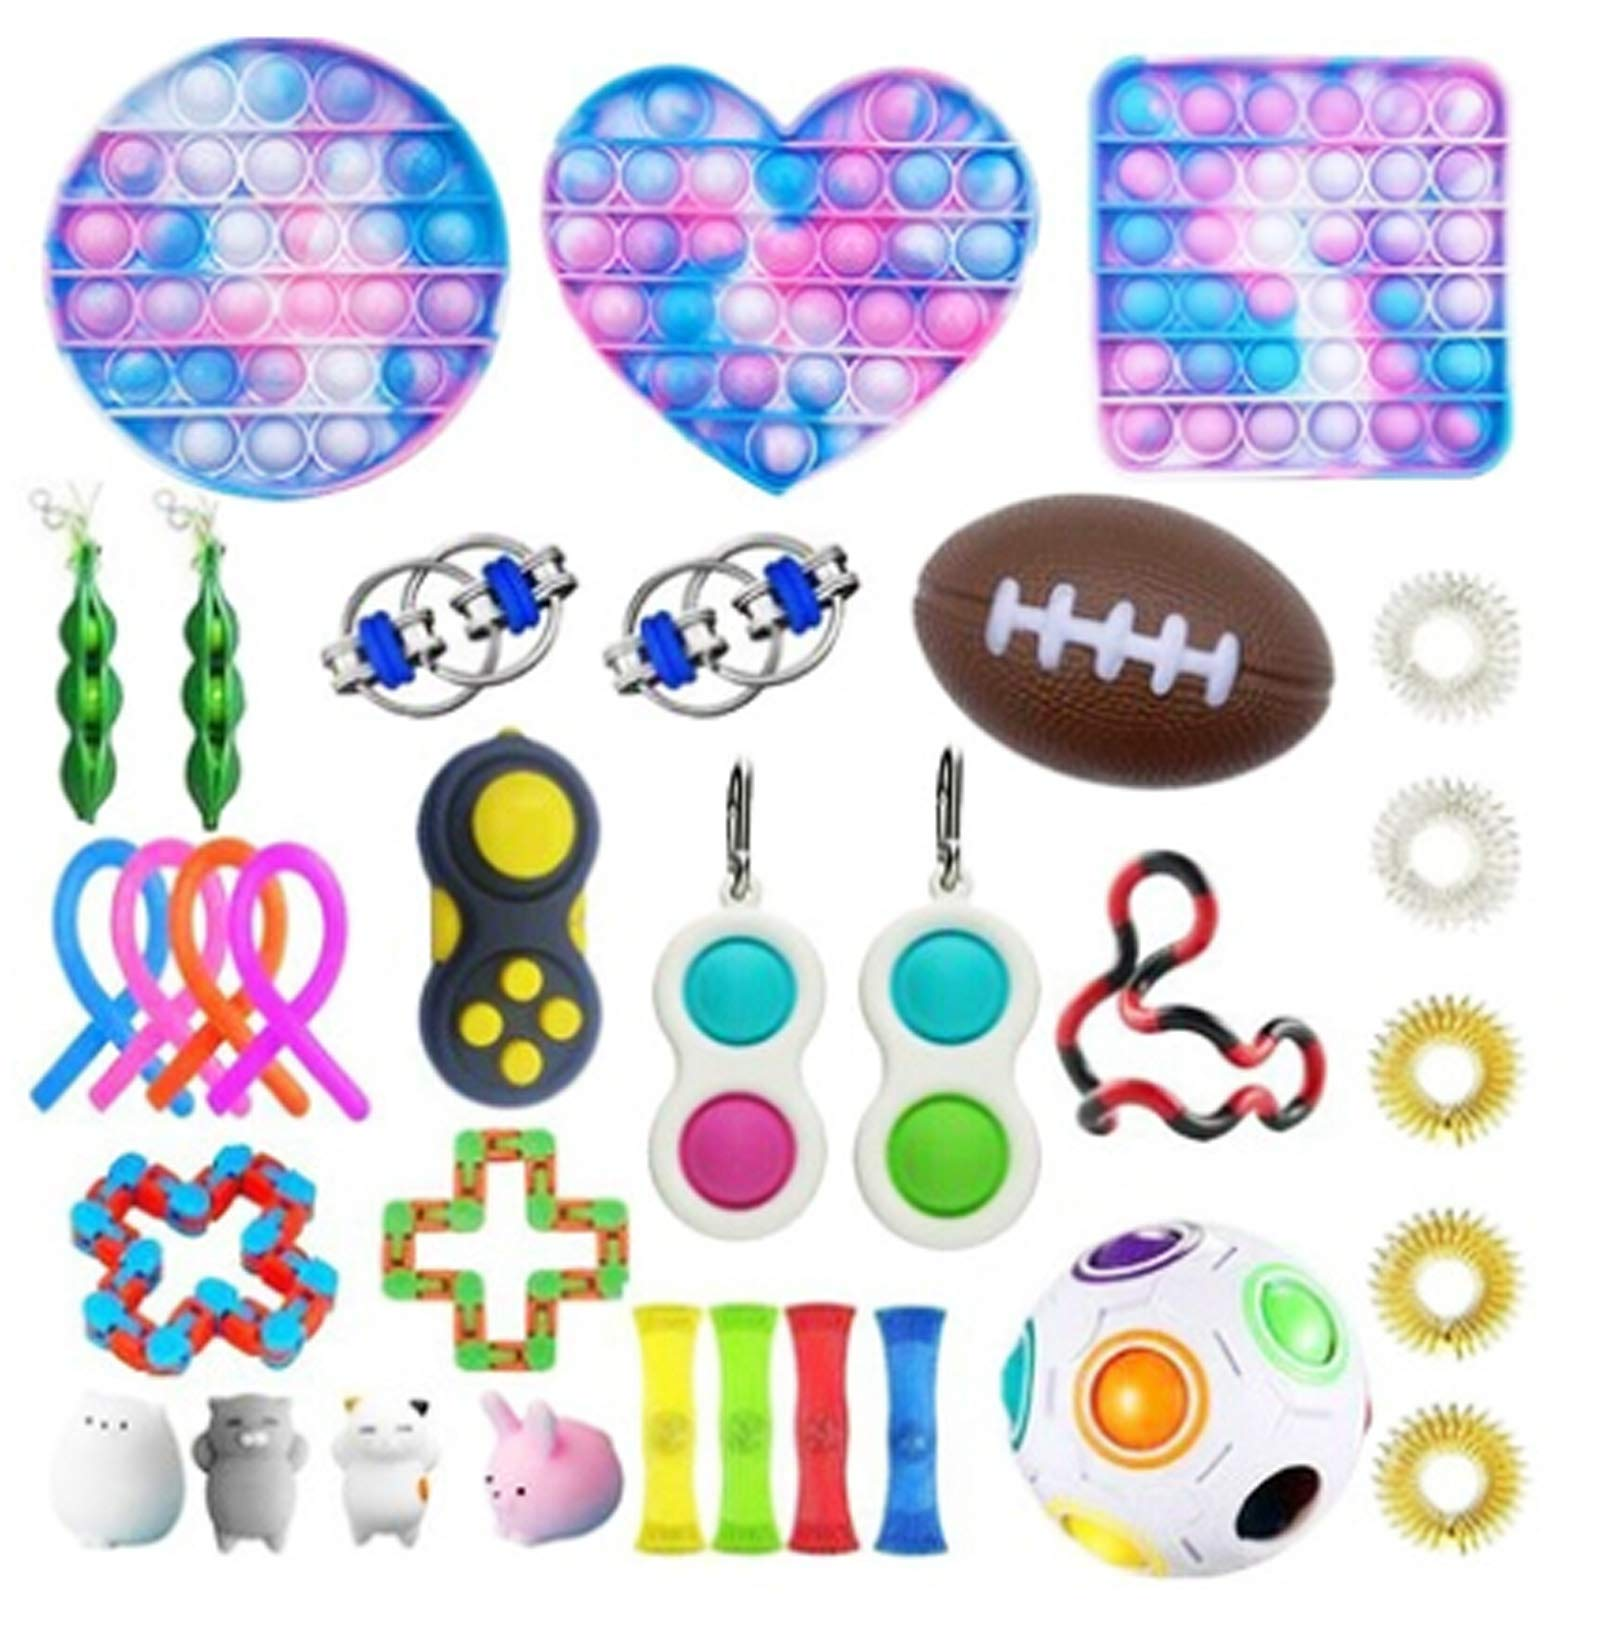 Komoo Fidget Pack Stress Relief Tools Bundle Sensory Figetget Toys for ADHD Autism Stress Anxiety (11)